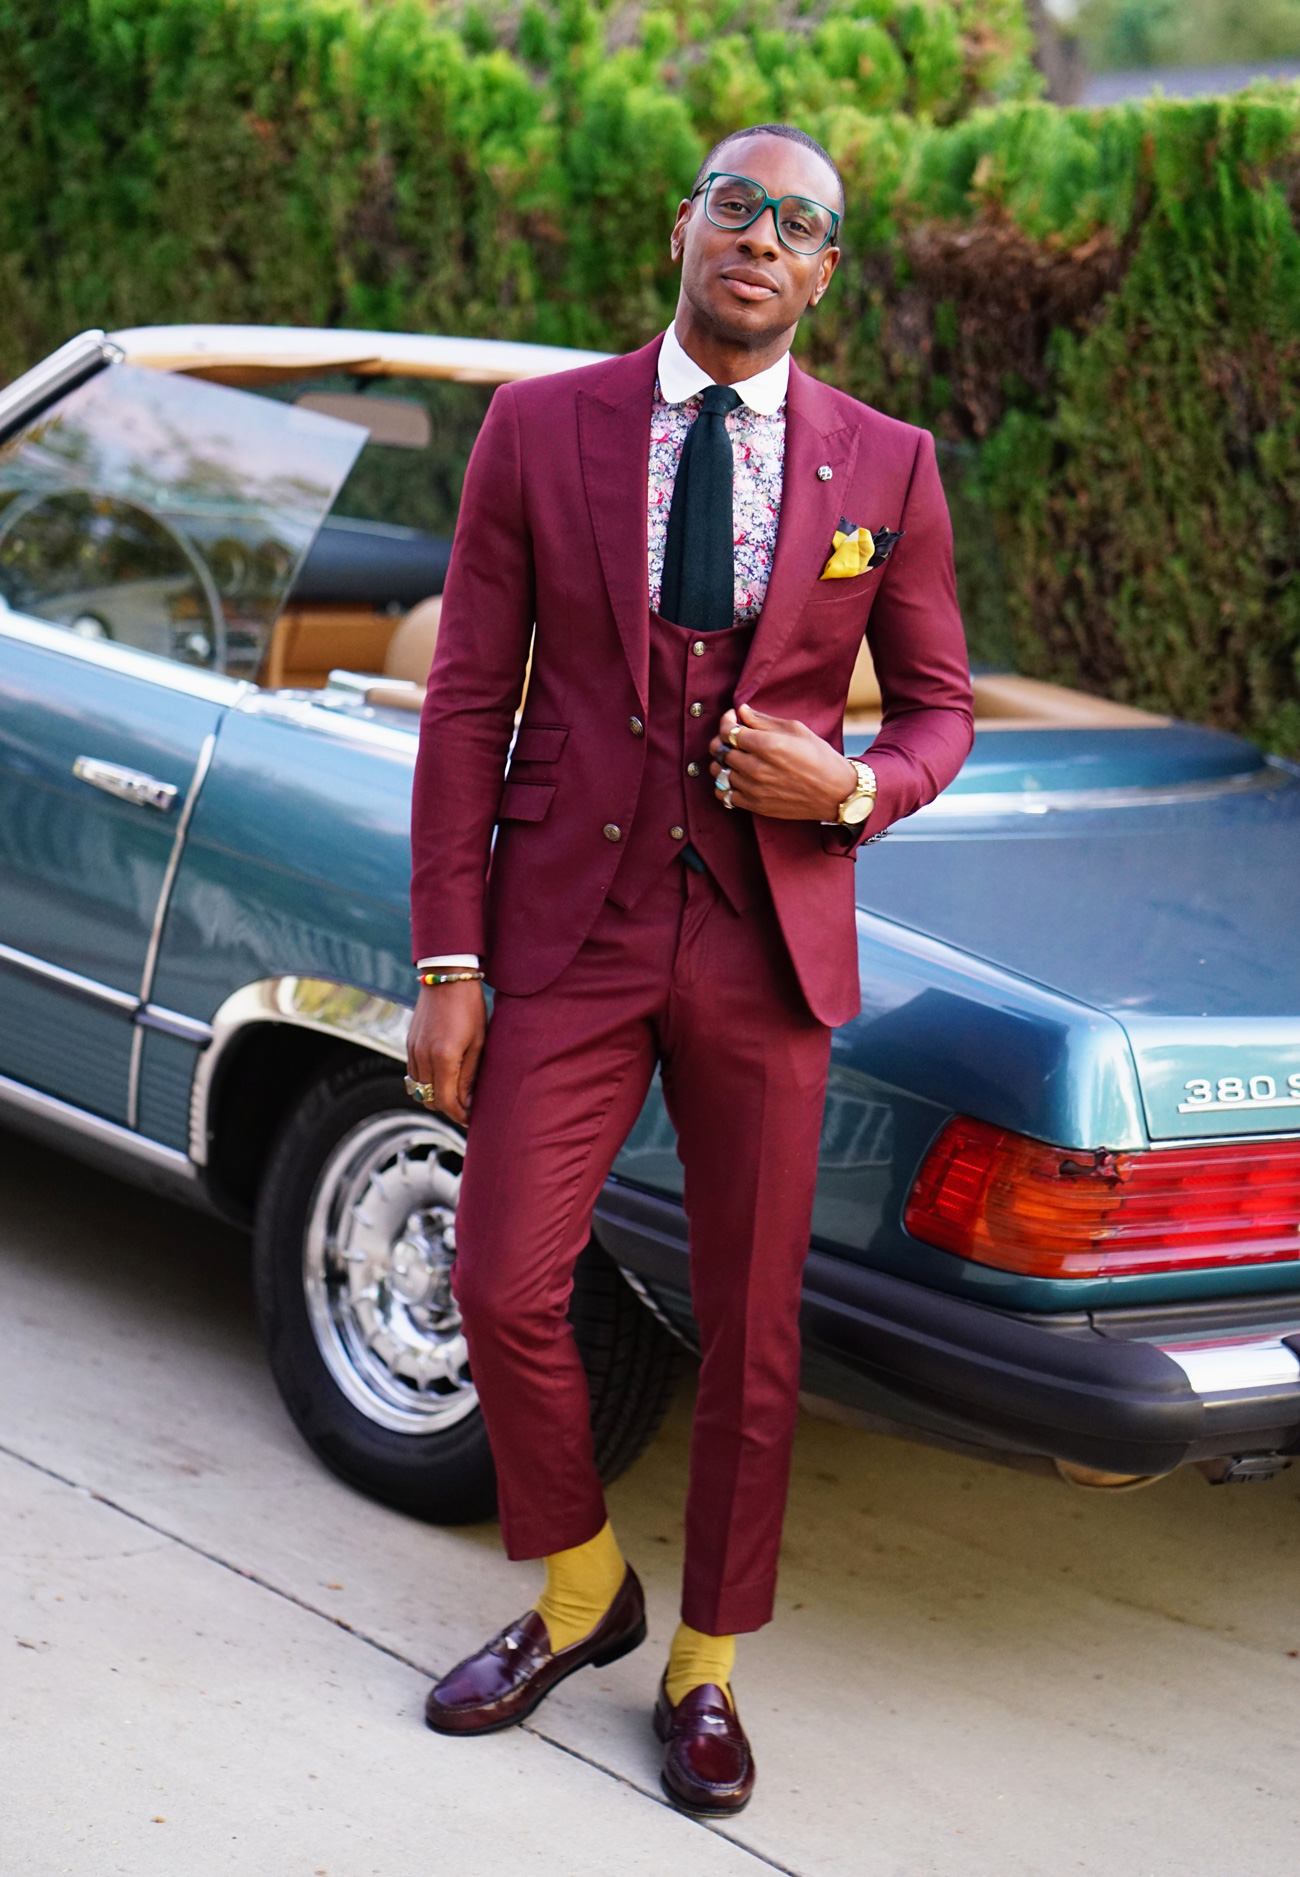 Ootd 3 Piece Burgundy Suit Tailored To Perfection